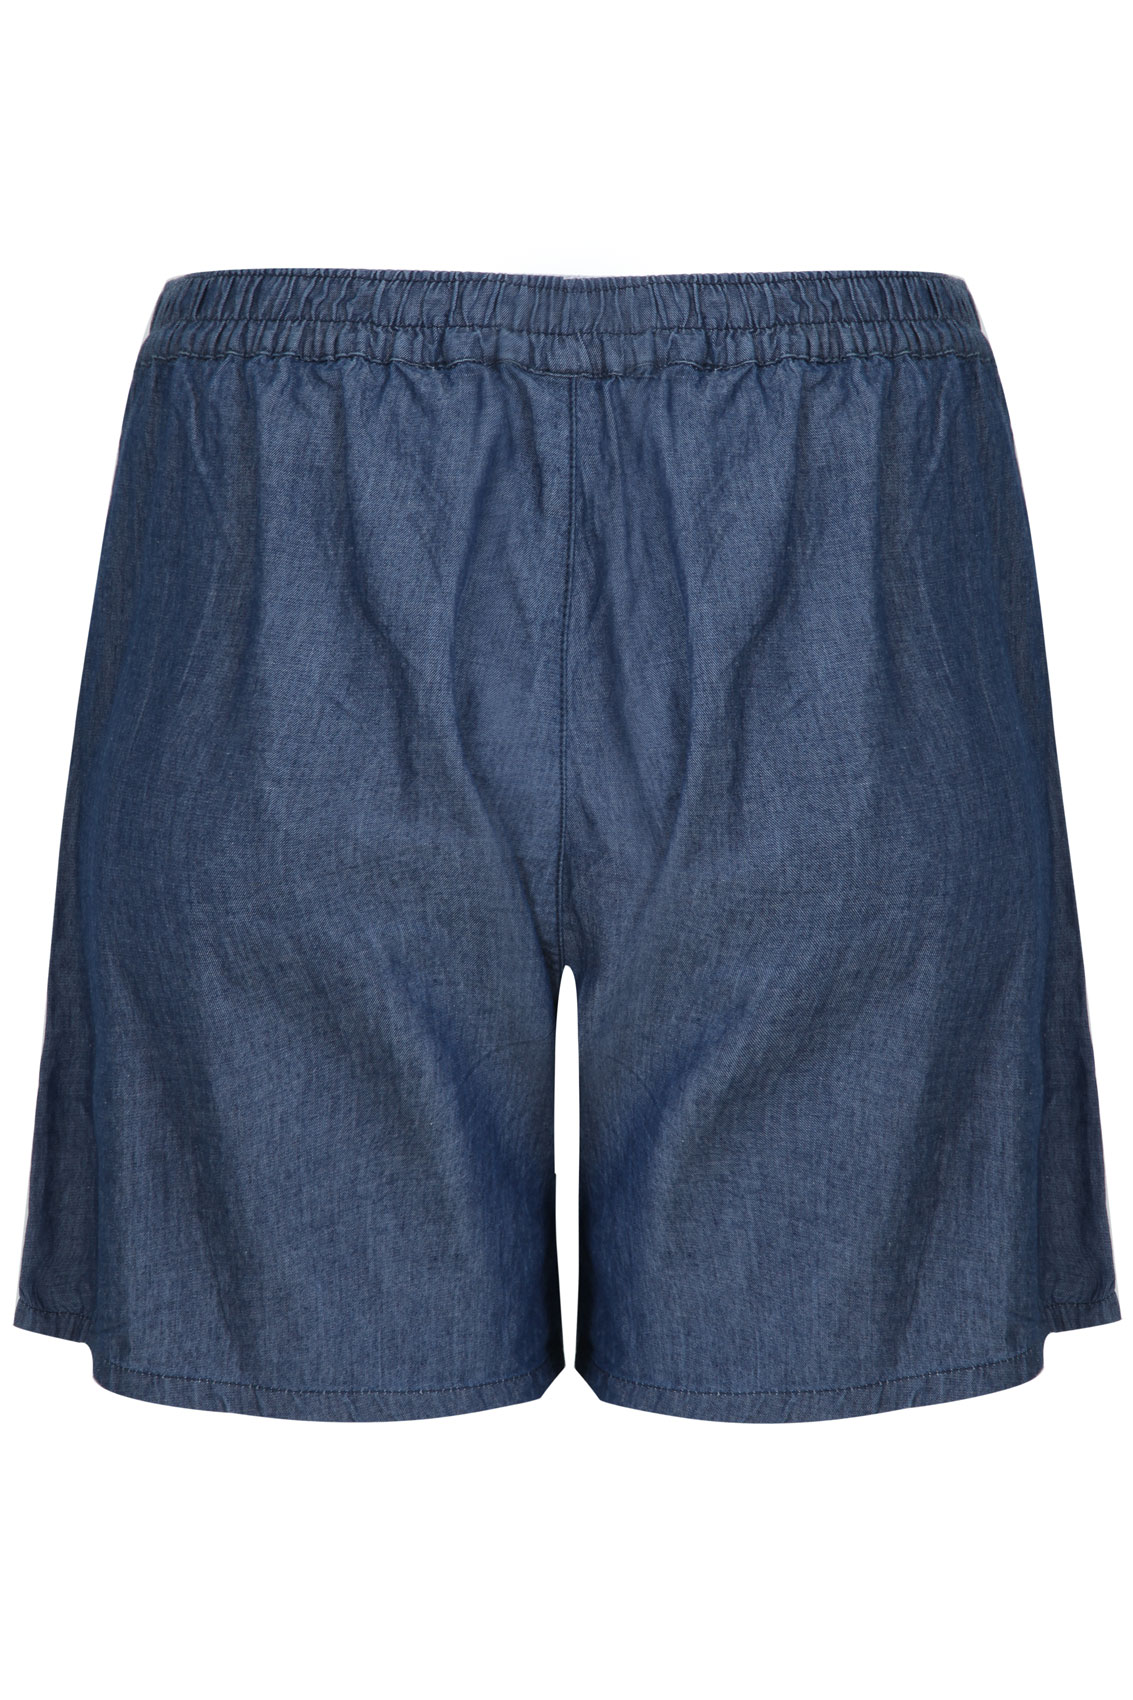 Mid blue chambray denim shorts plus size 14 16 18 20 22 24 for Chambray jeans